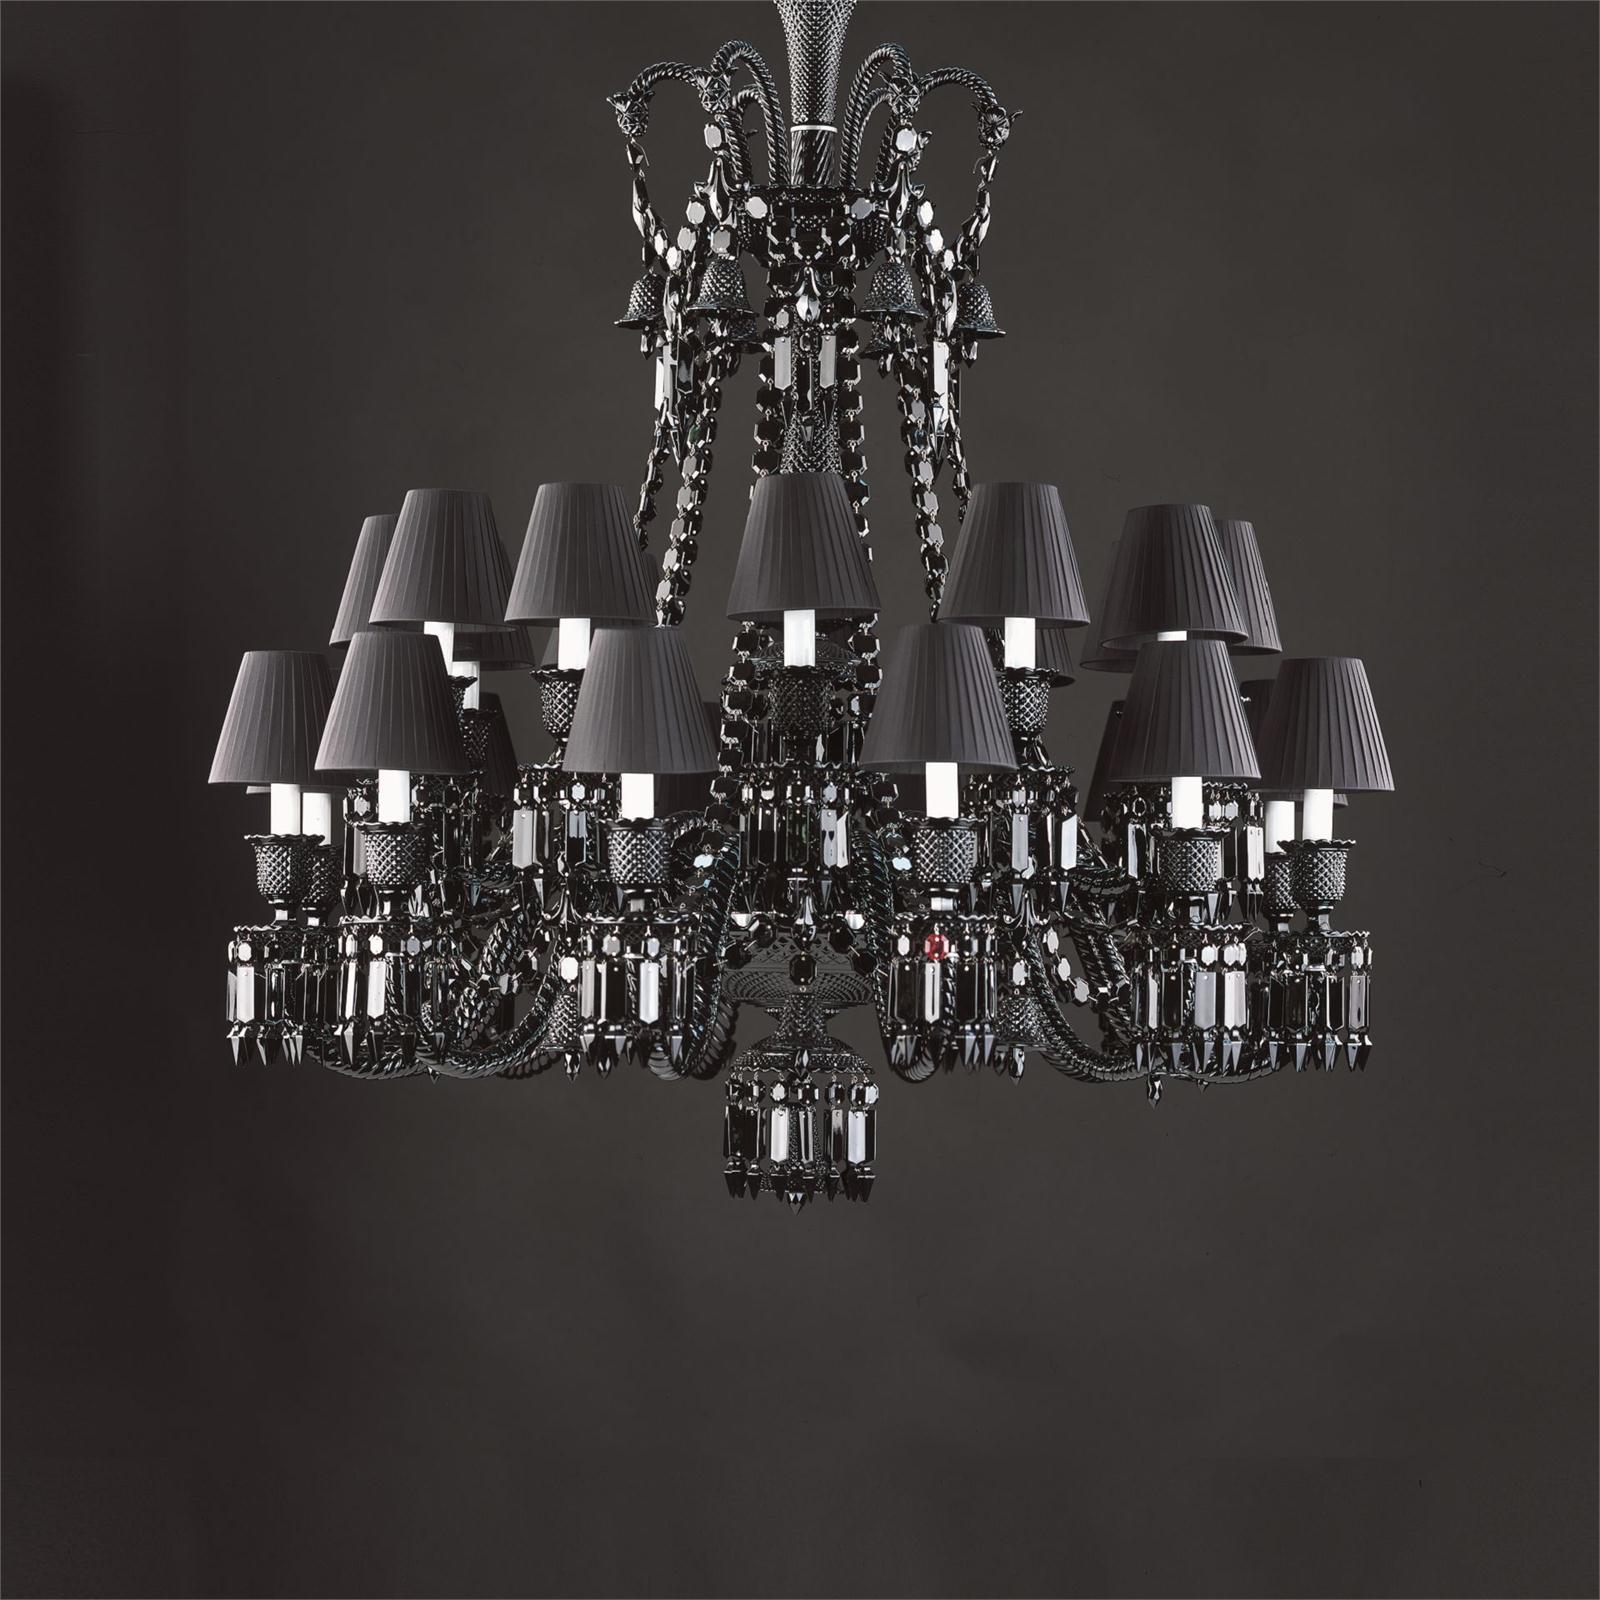 Baccarat zenith 24 arm black crystal chandelier baccarat crystal blog baccaratzenith24arm baccarat crystal black zenith 24 arm chandelier designed by philippe aloadofball Choice Image